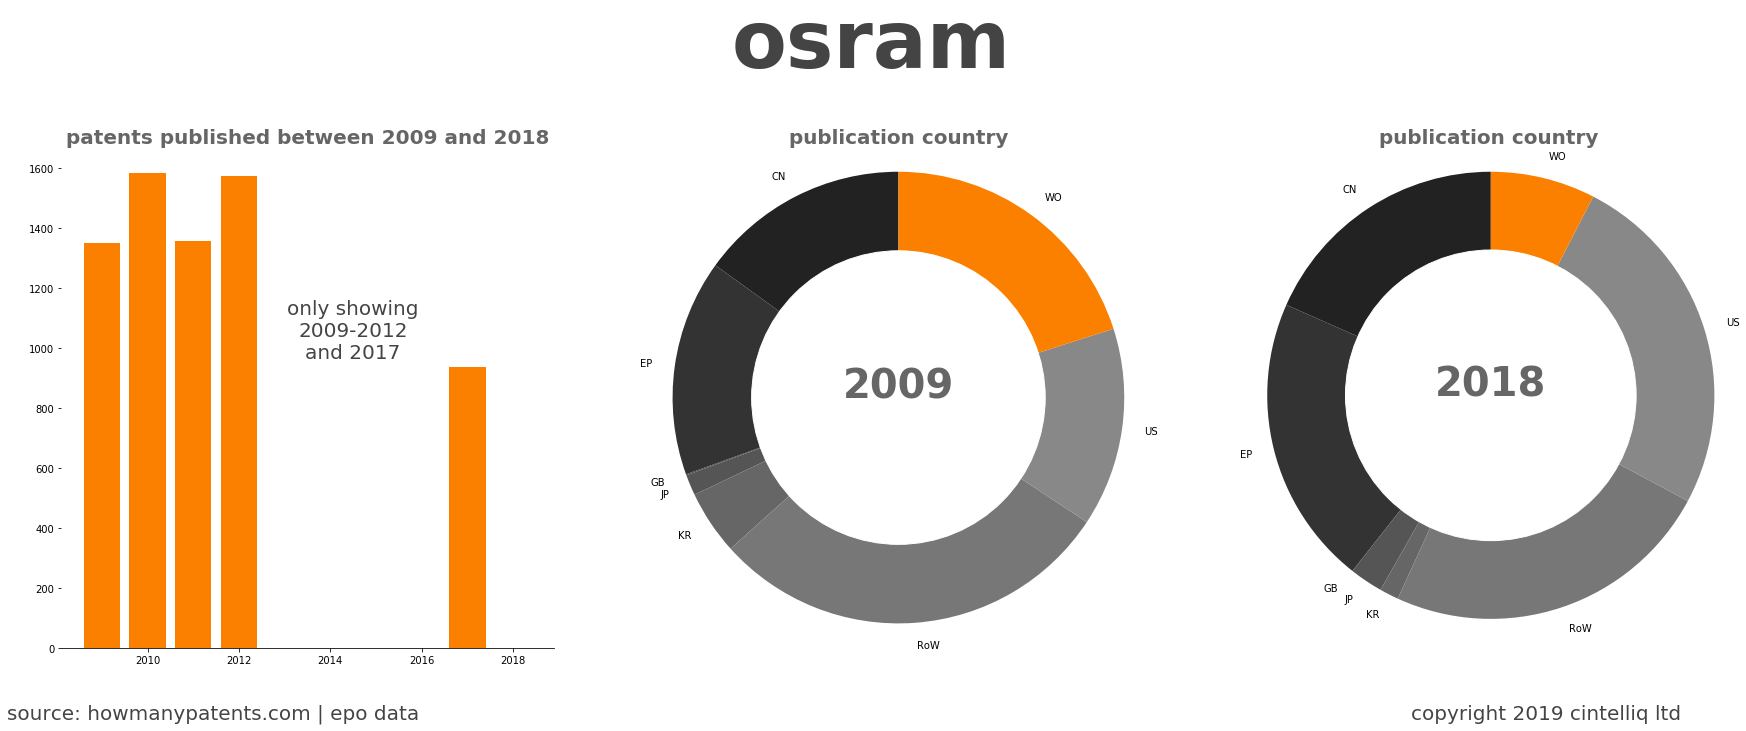 summary of patents for Osram